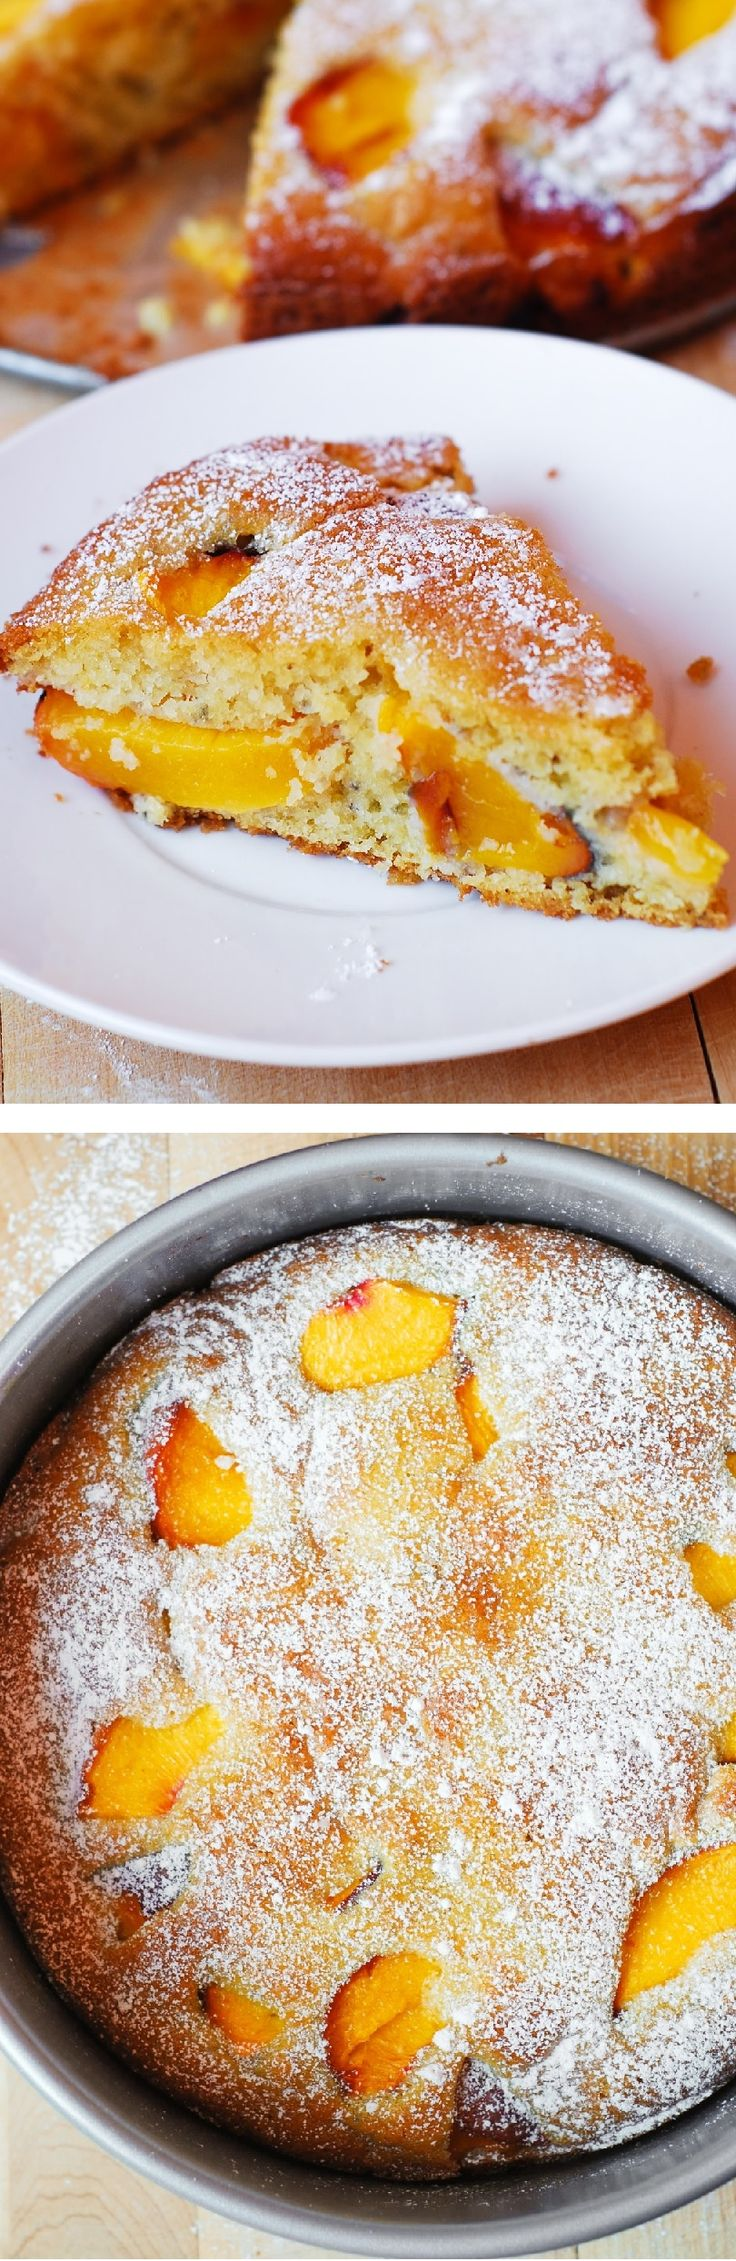 Amazing, easy-to-make, everyday recipe: Gluten Free Peach Yogurt Cake, made without any gums, using gluten-free (and gum-free) multi-purpose flour (King Arthur brand), and Greek yogurt!